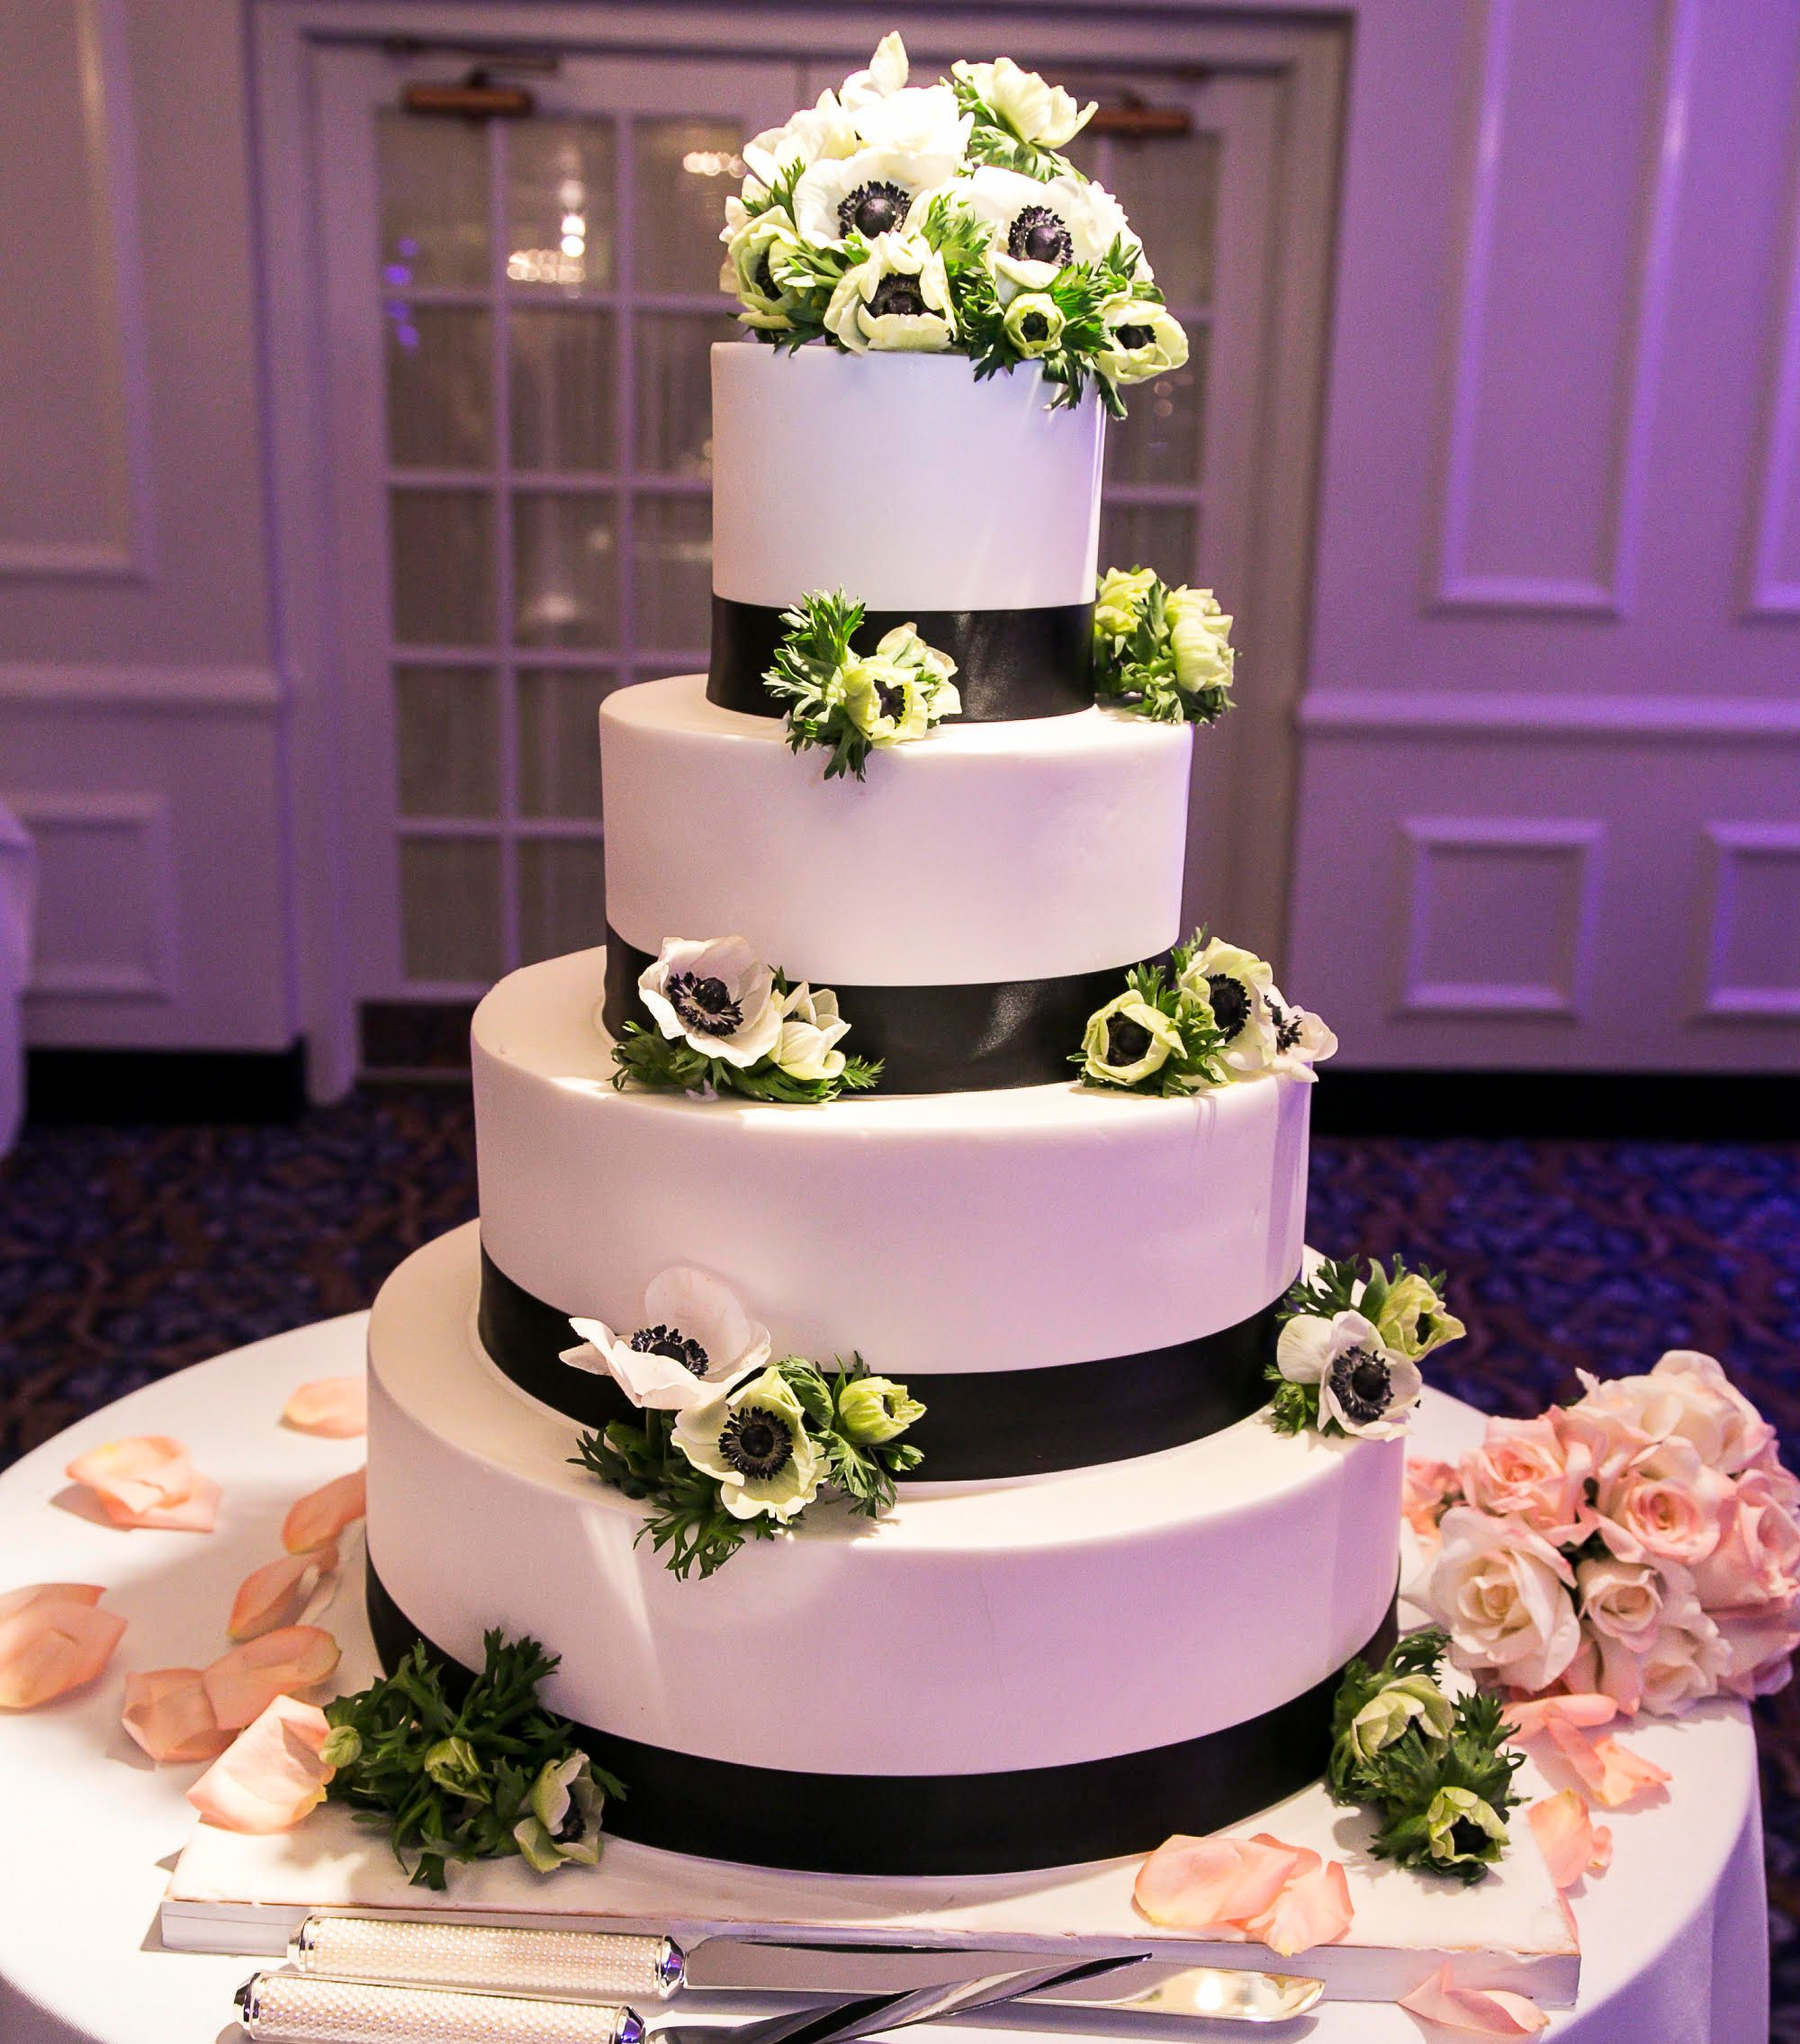 wedding cakes northern new jersey%0A Browse our catalog of Custom  Wedding  Birthday  Celebrity and Graduation  Cakes from the famed Palermo u    s Bakery in New Jersey